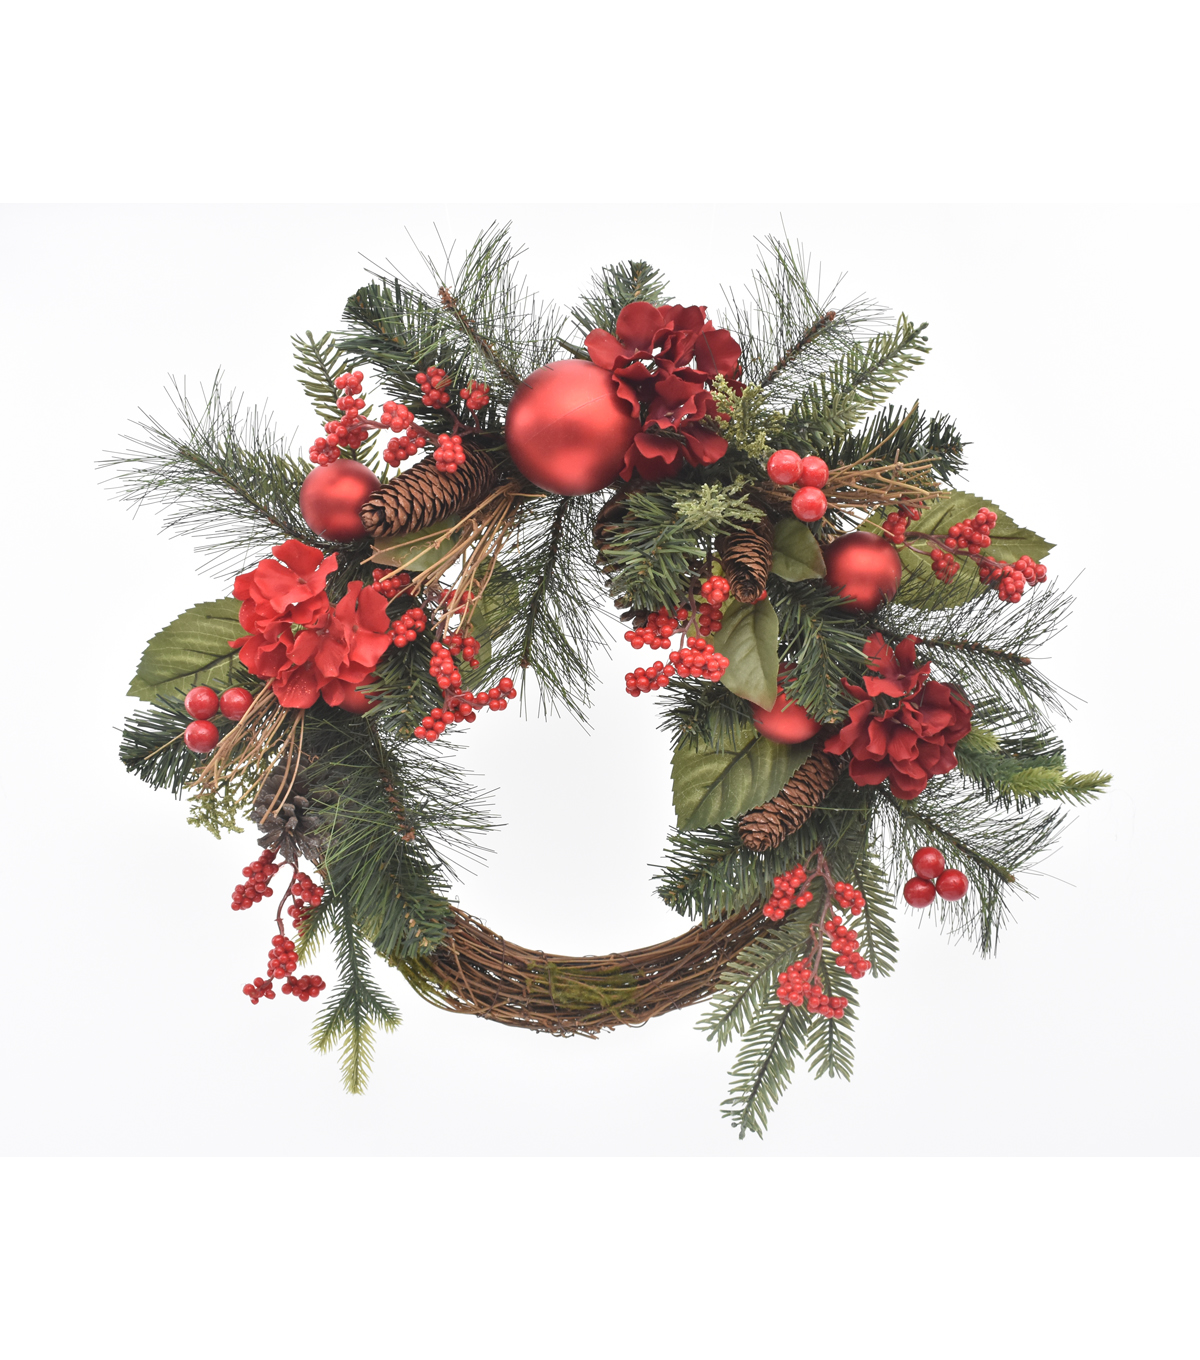 Blooming Holiday Christmas 22'' Hydrangea, Berry & Pinecone Wreath Red                      Blooming Holiday Christmas 22'' Hydrangea, Berry & Pinecone Wreath Red by Blooming Holiday